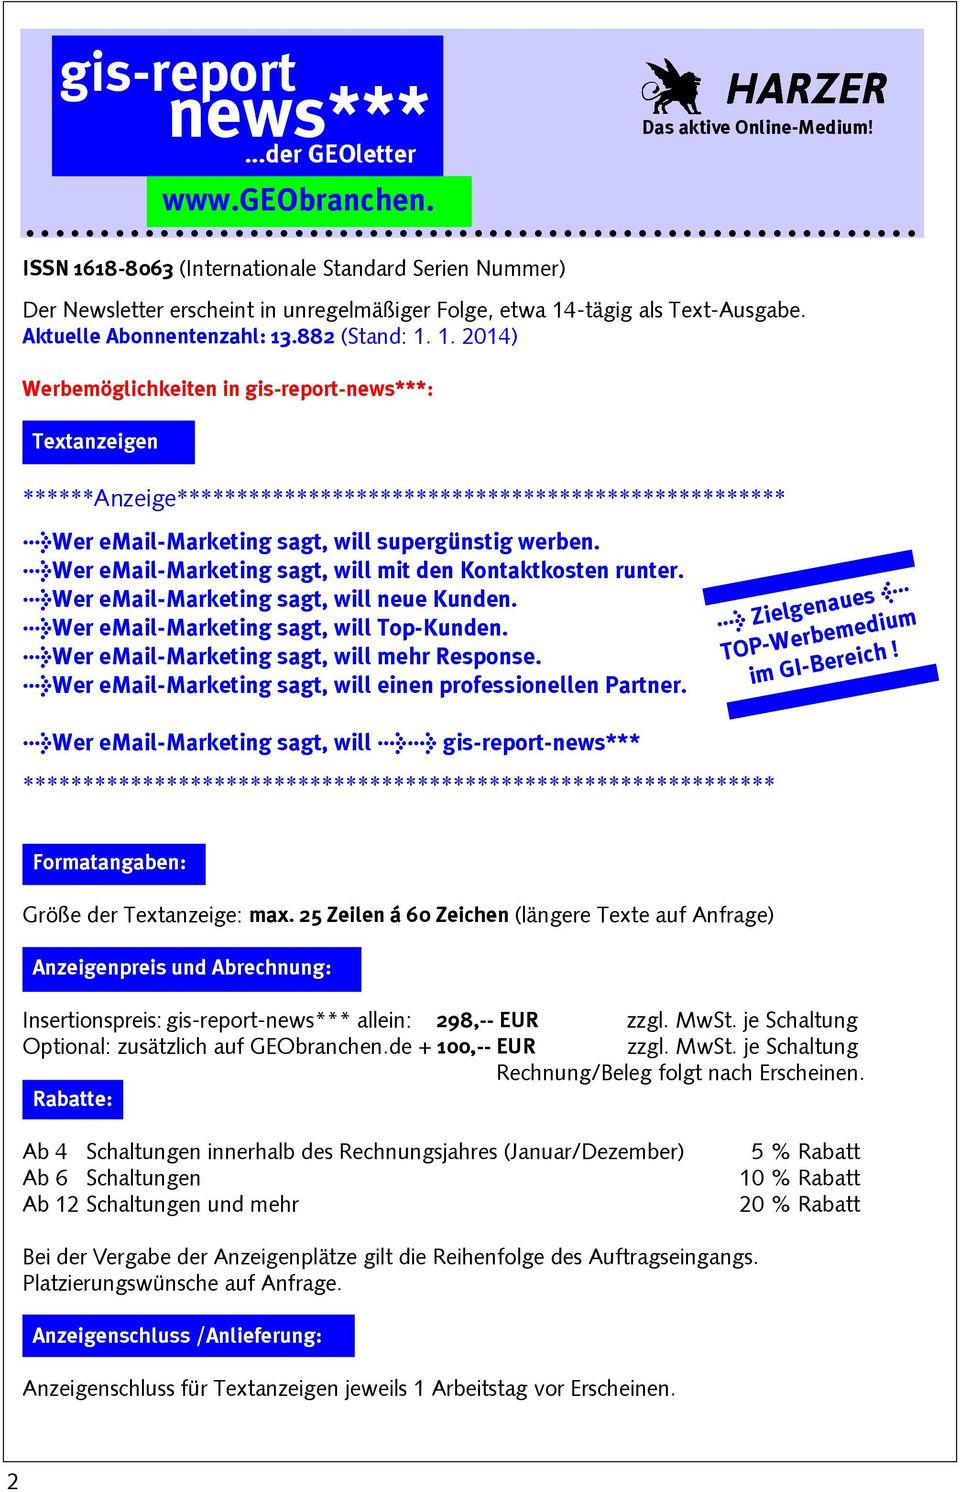 ... ISSN 1618-8063 (Internationale Standard Serien Nummer) ******Anzeige*************************************************** >Wer email-marketing sagt, will supergünstig werben.